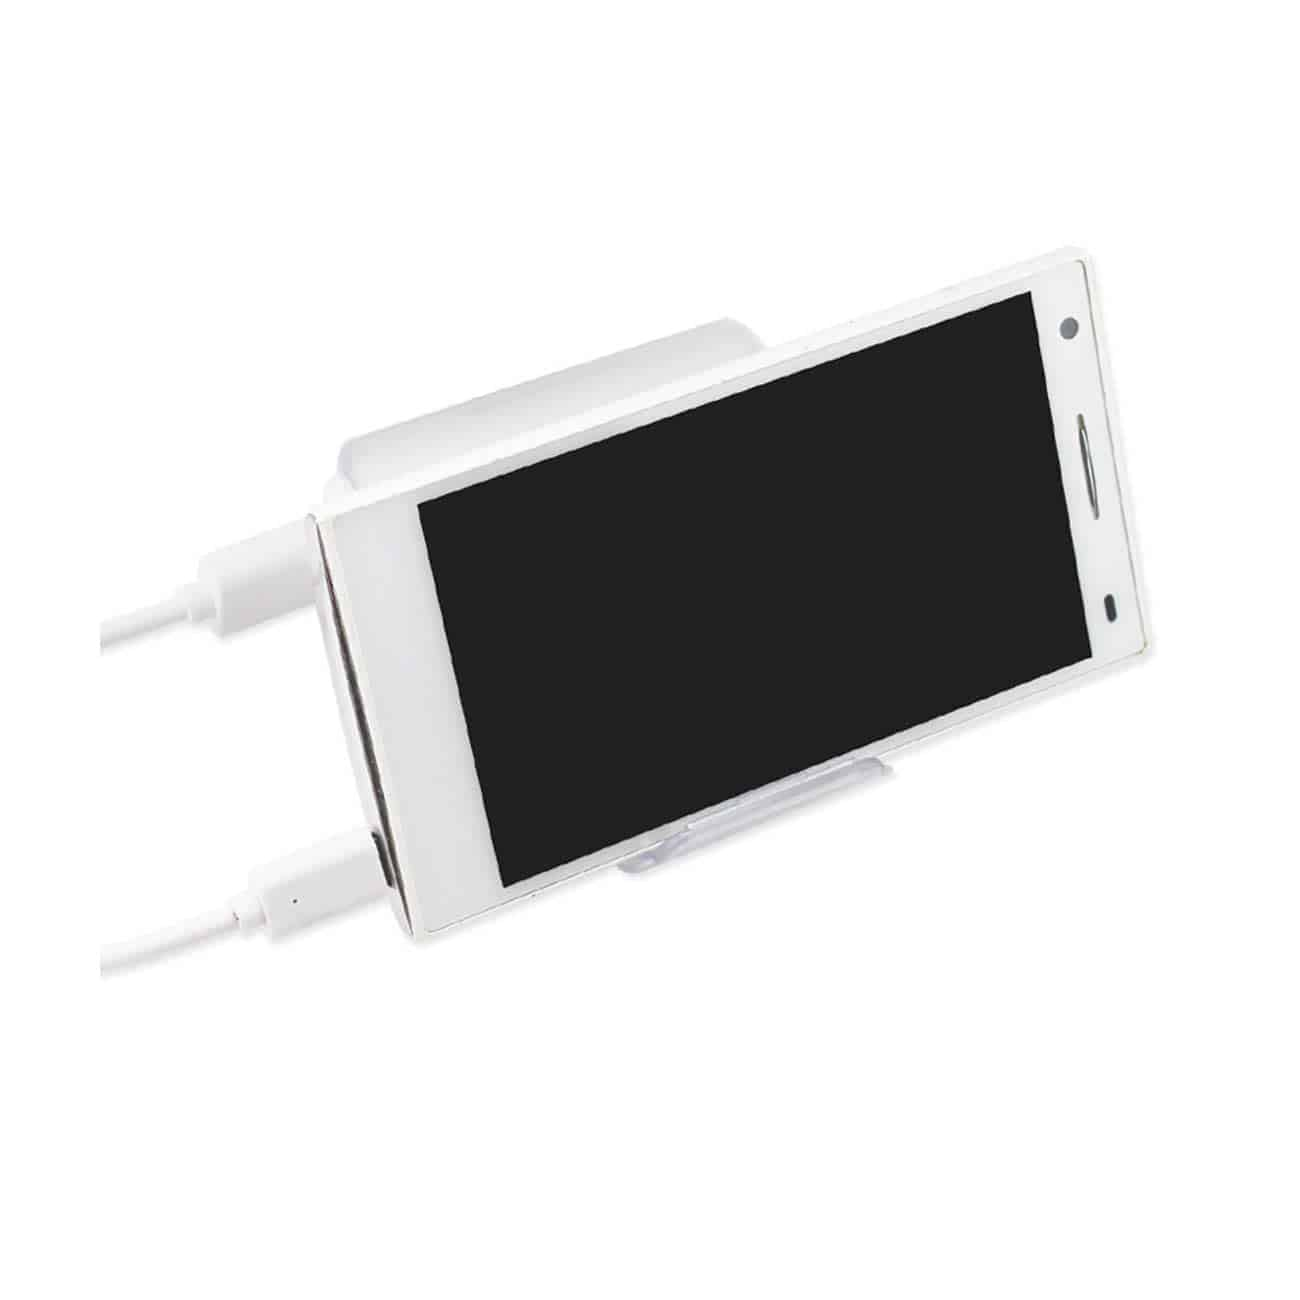 4000MAH UNIVERSAL POWER BANK WITH CABLE IN WHITE